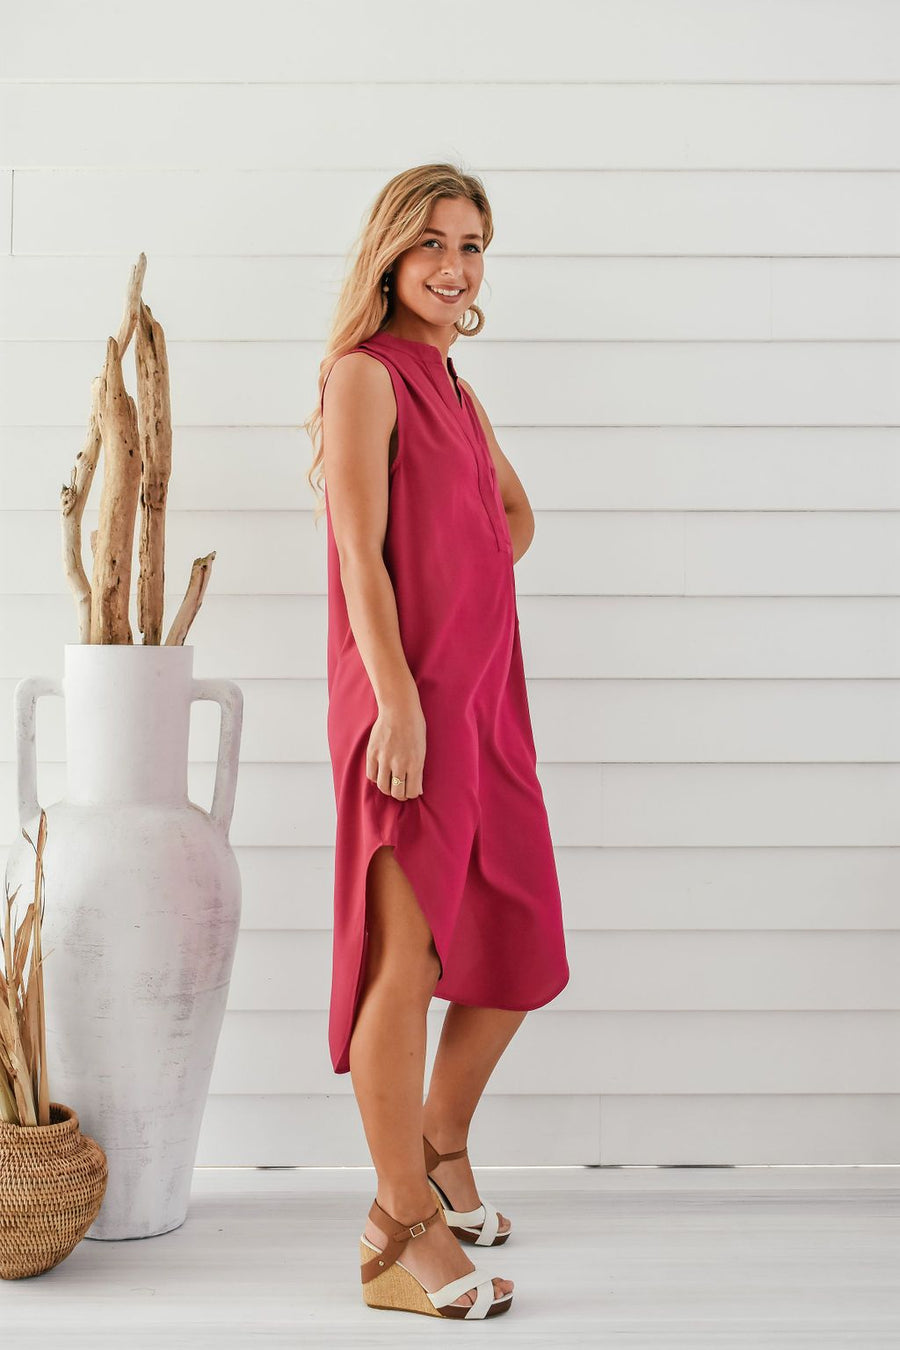 Addi Shirt Dress | Pink DRESS Gray Label